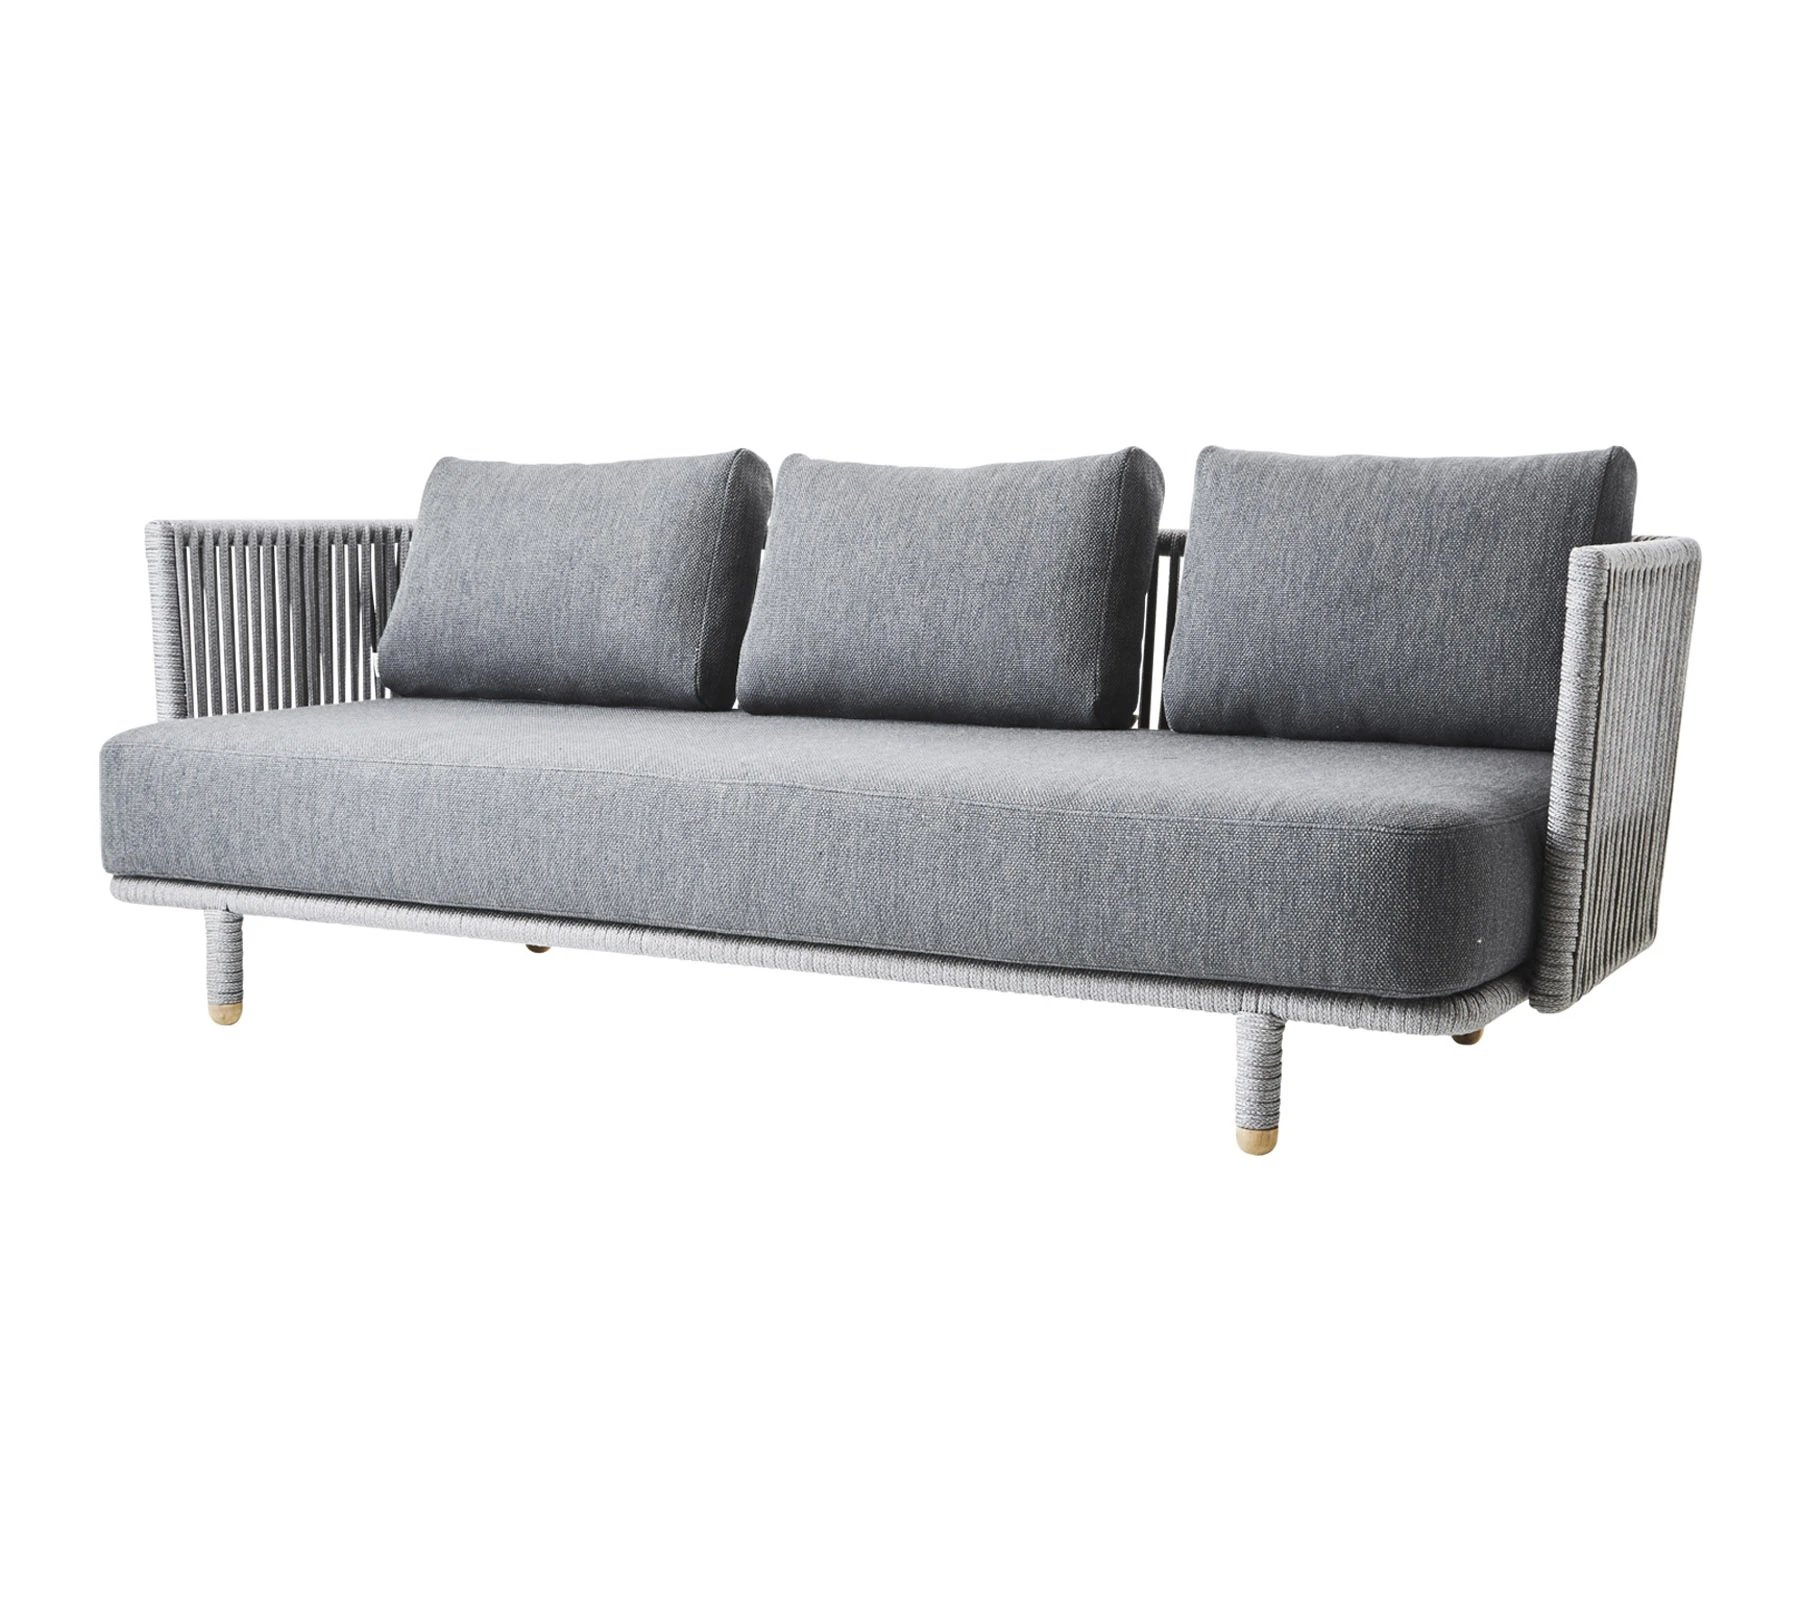 Moments 3-Seater Outdoor Sofa  from Cane-line, designed by Foersom & Hiort-Lorenzen MDD